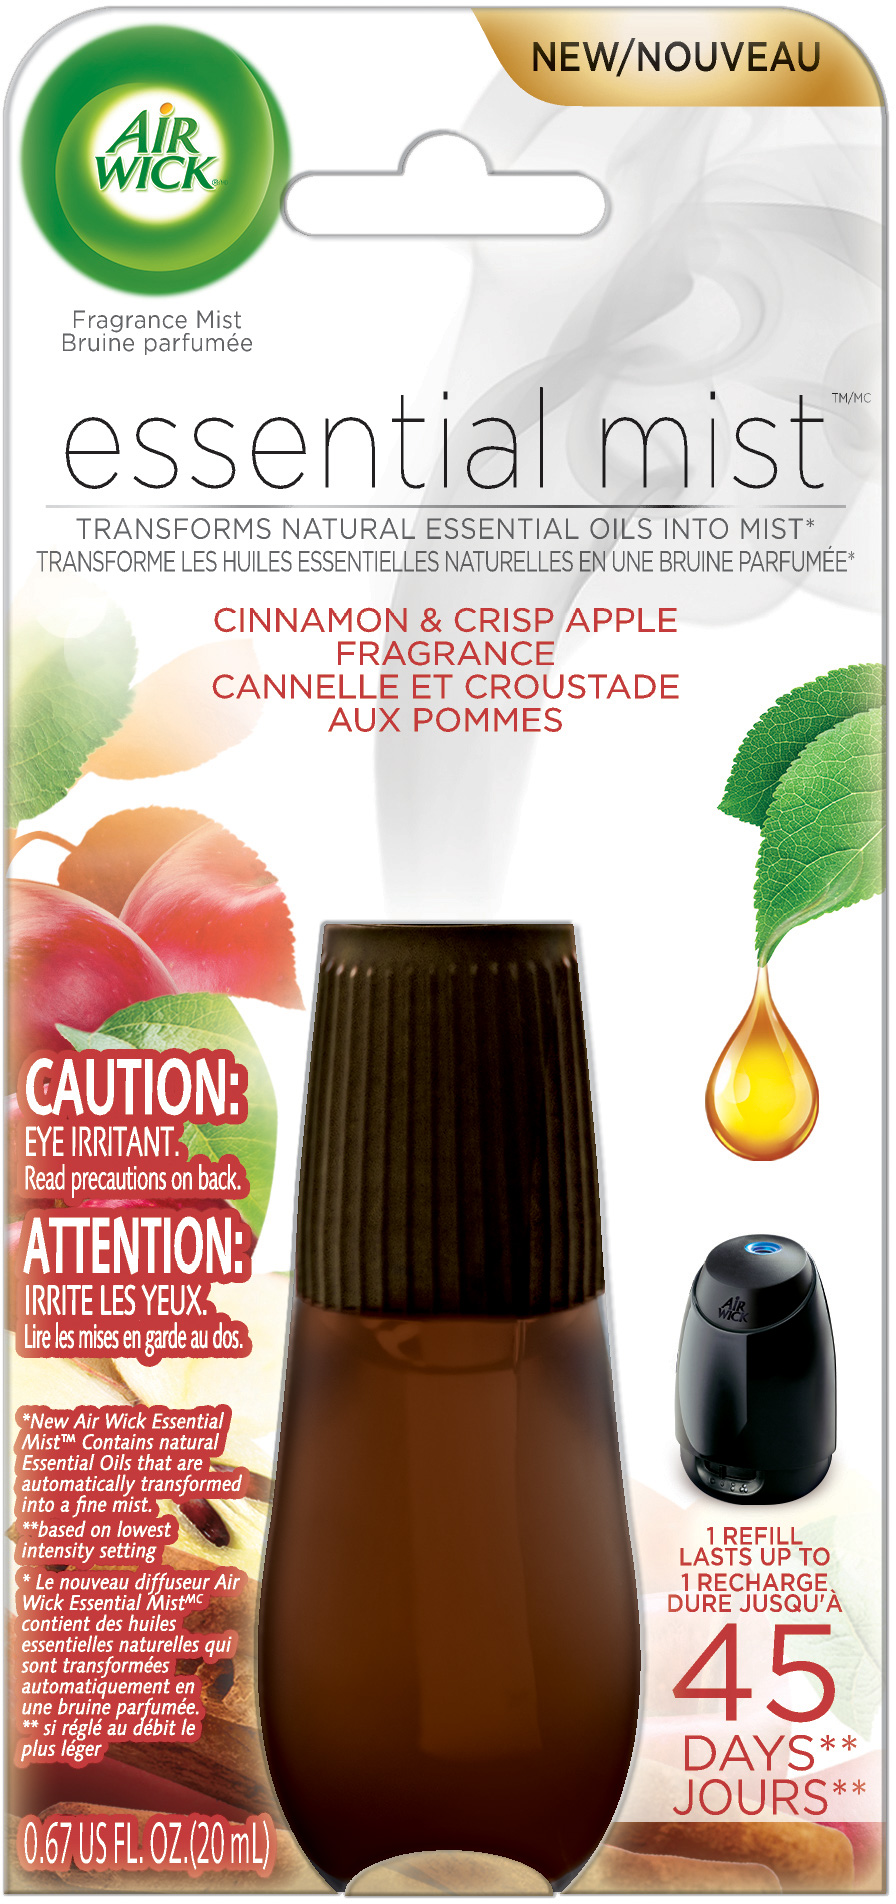 AIR WICK® Essential Mist - Cinnamon & Crisp Apple (Canada)